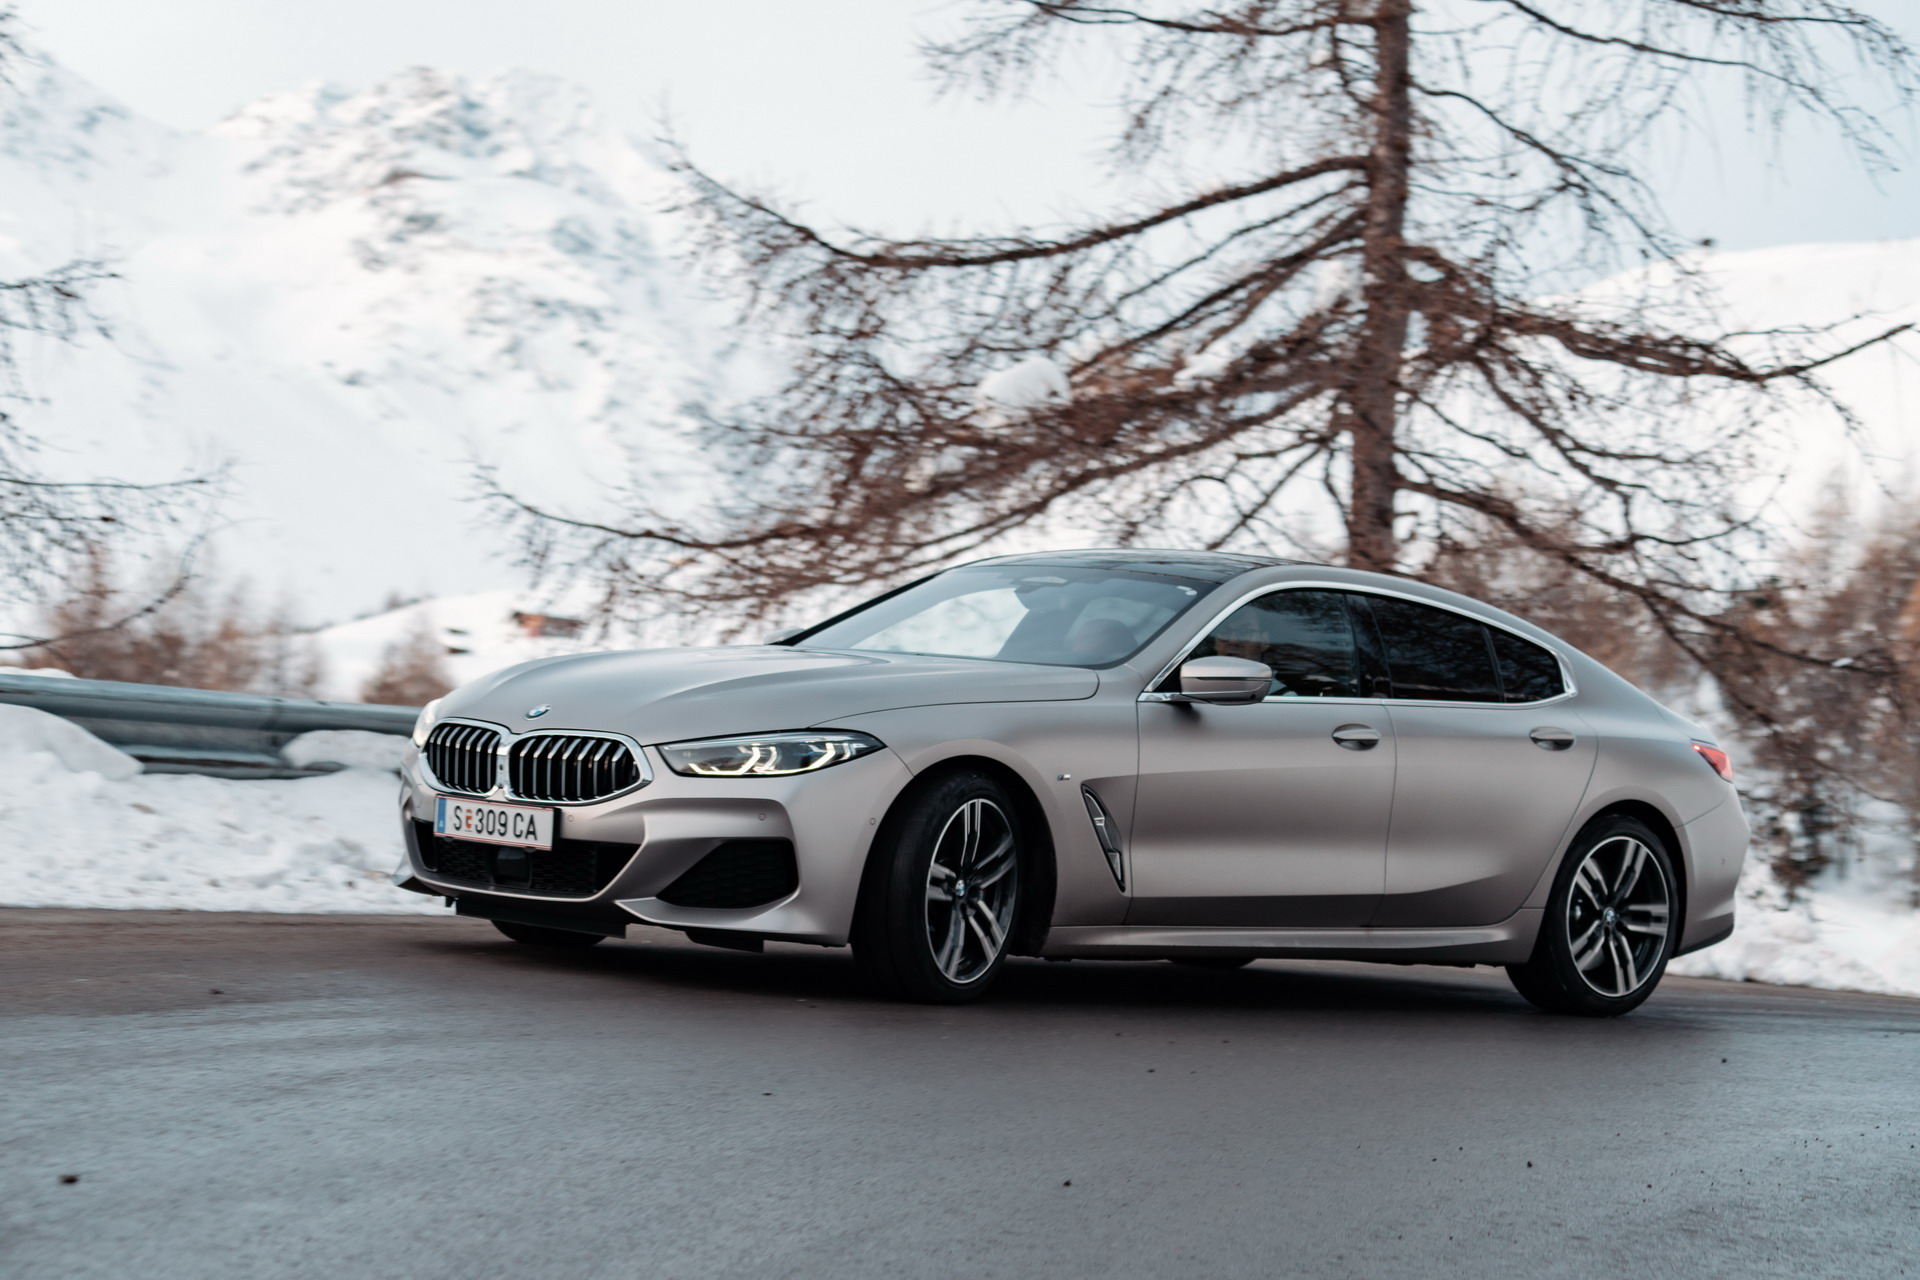 The new X6 and 8 Series Gran Coupe in Solden 11